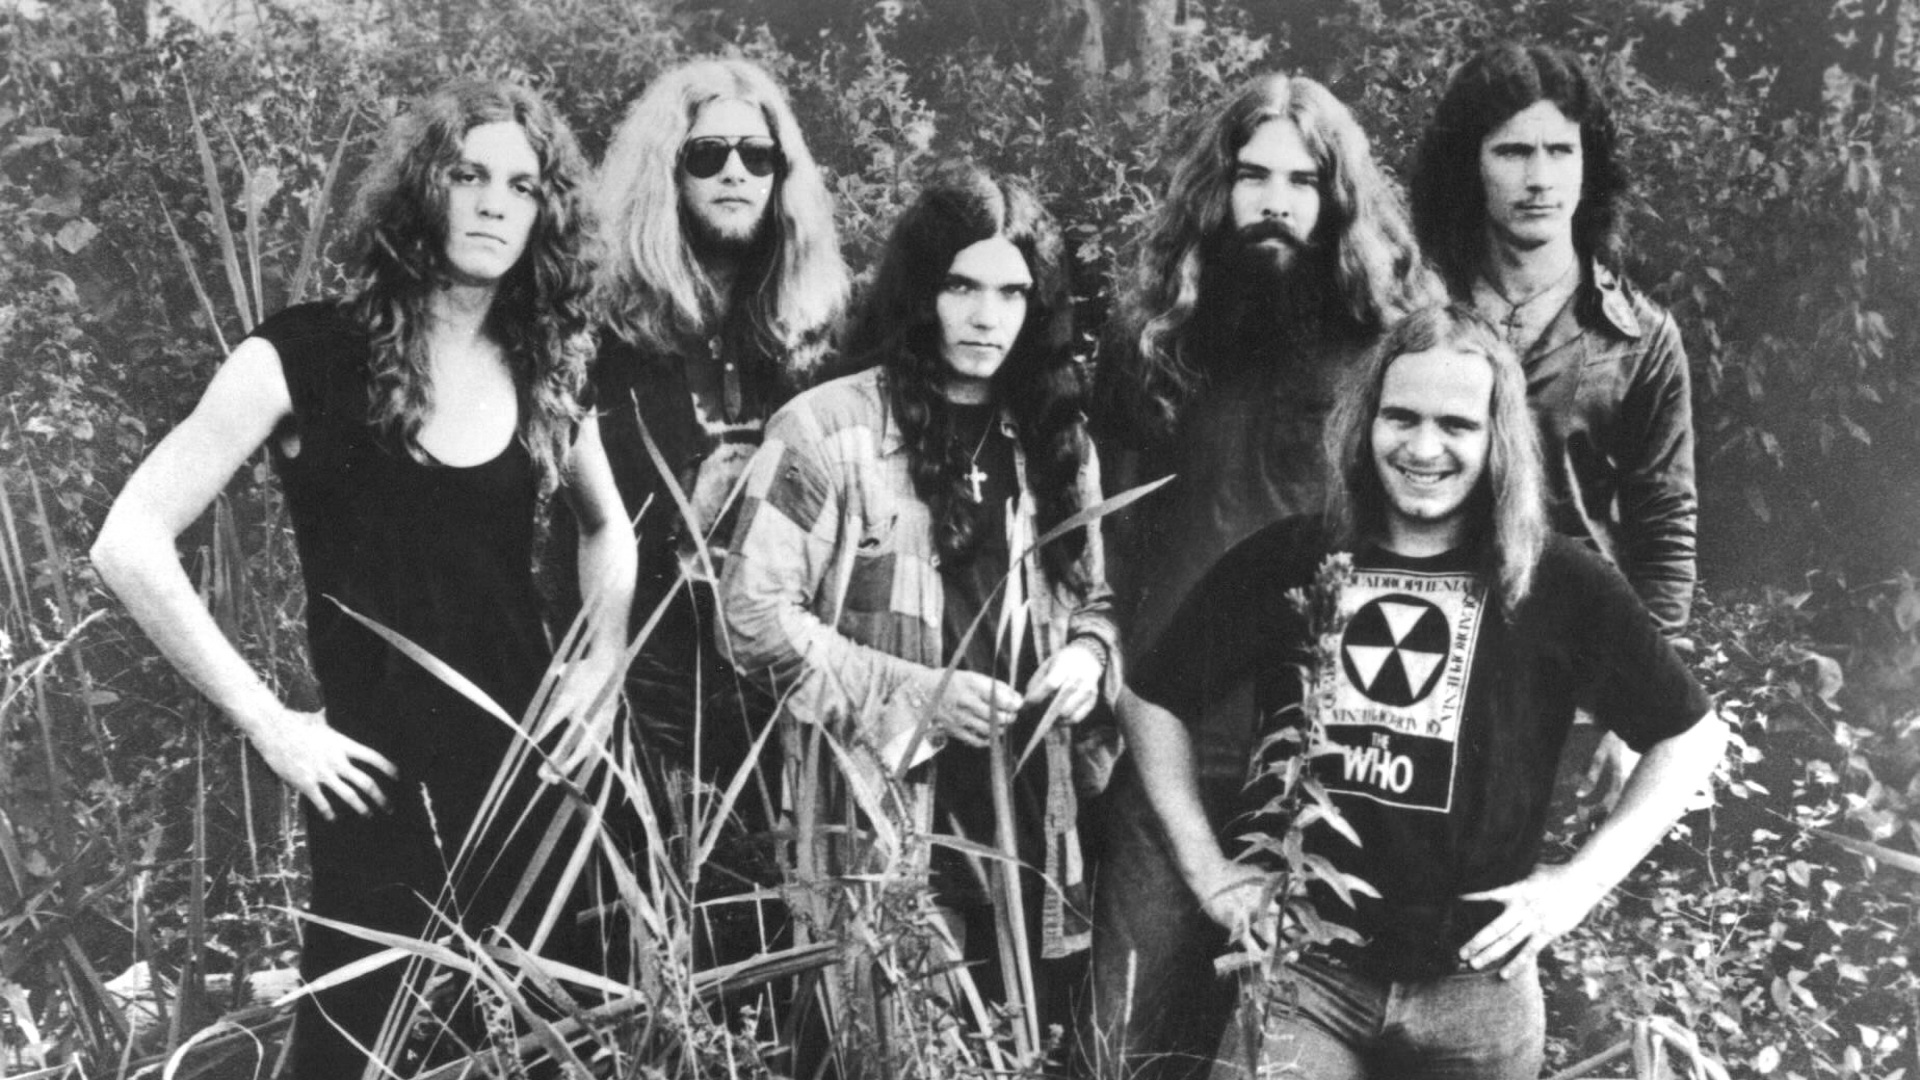 Lynyrd-Skynyrd-is-an-American-rock-band-best-known-for-popularizing-the-southern-hard-rock-genre-dur-wallpaper-wpc9206945